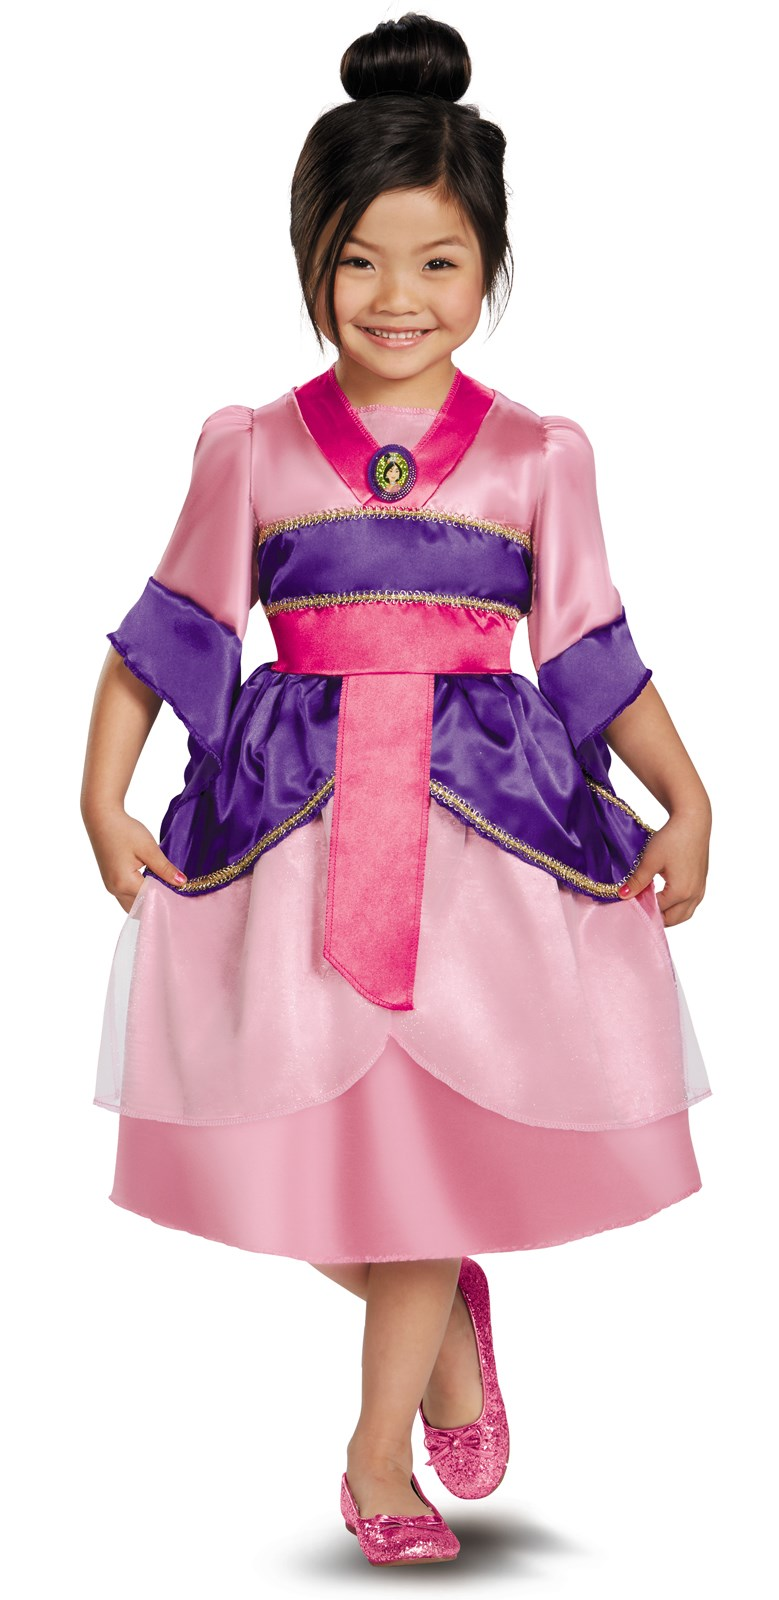 Disney Mulan Sparkle Toddler / Child Costume 3T-4T